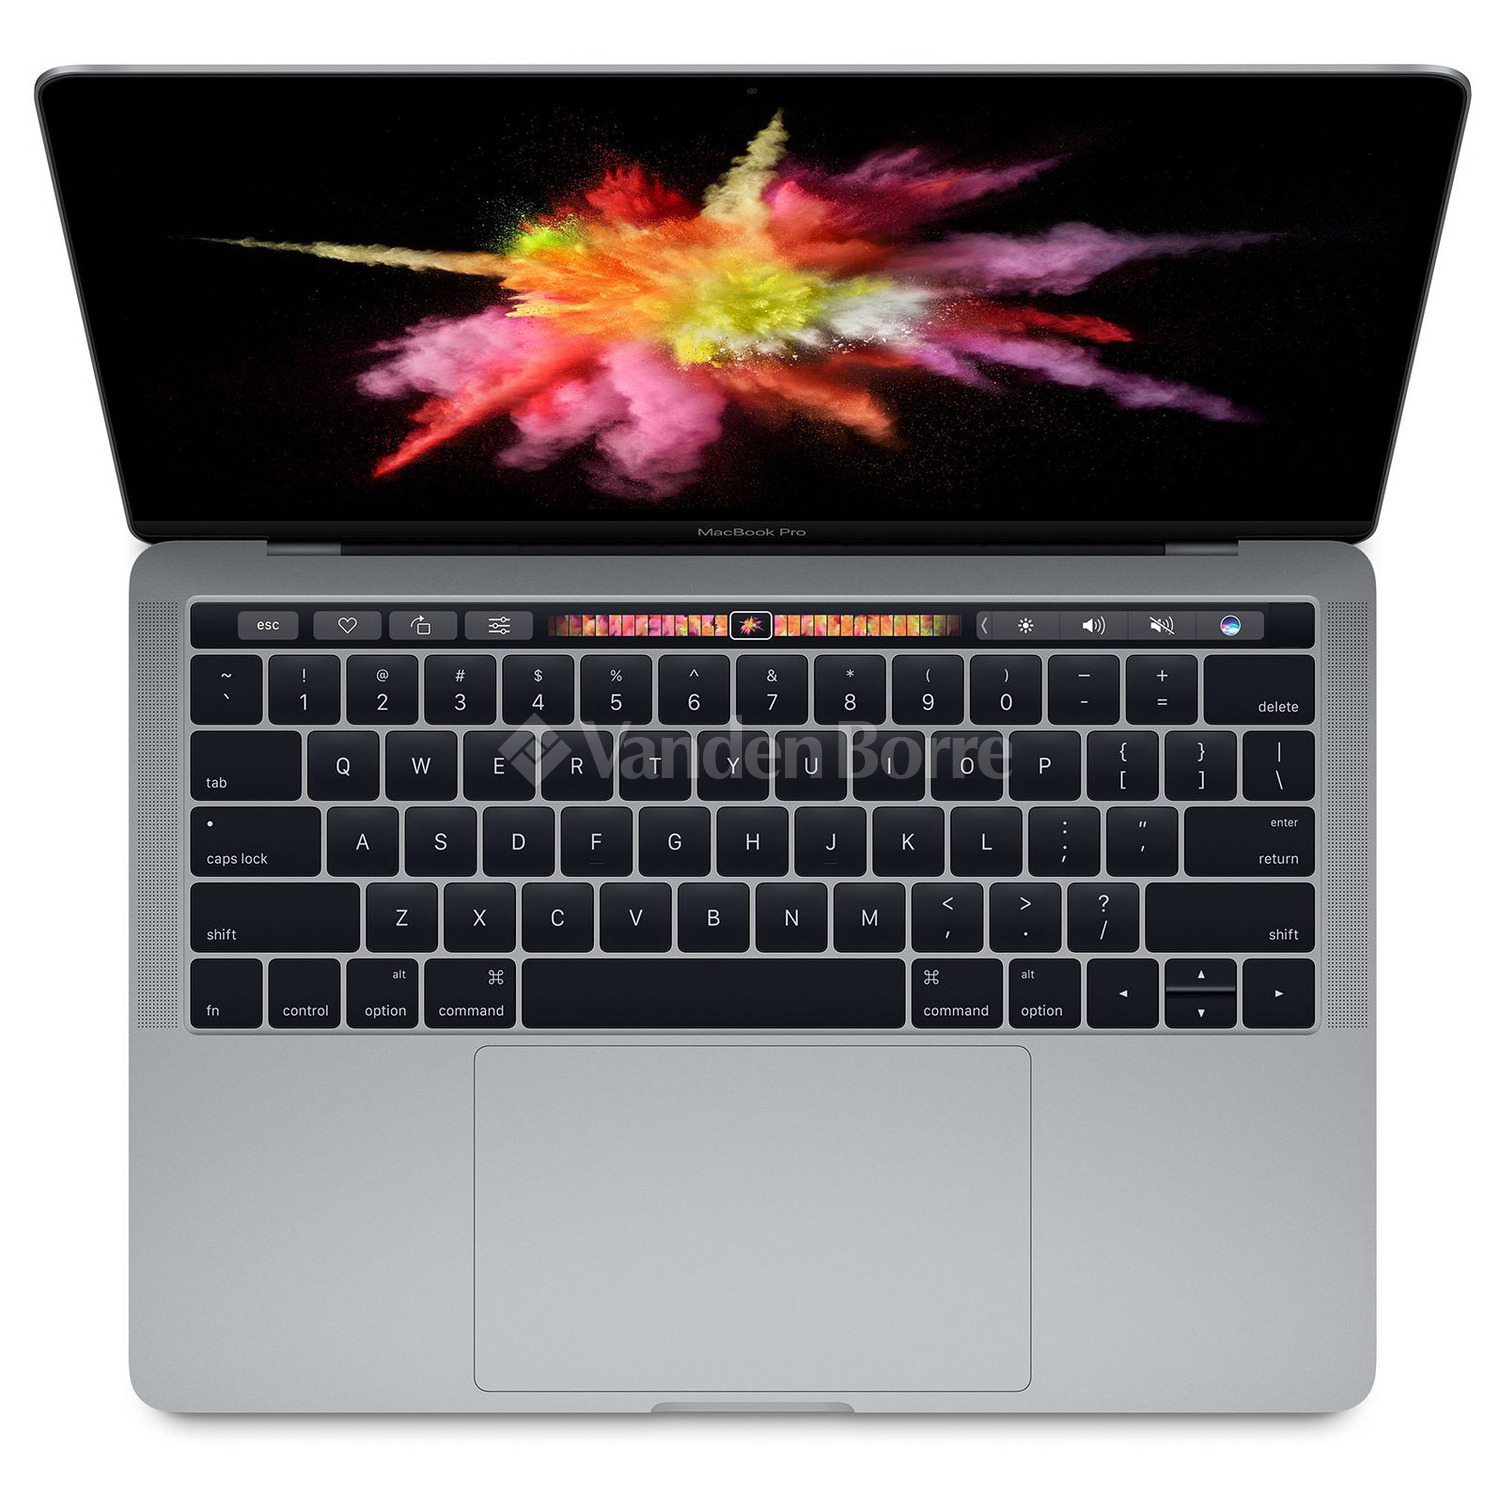 apple macbook pro 13 inch 2017 i5 512gb touchbar space grey mpxw2fn a chez vanden borre. Black Bedroom Furniture Sets. Home Design Ideas